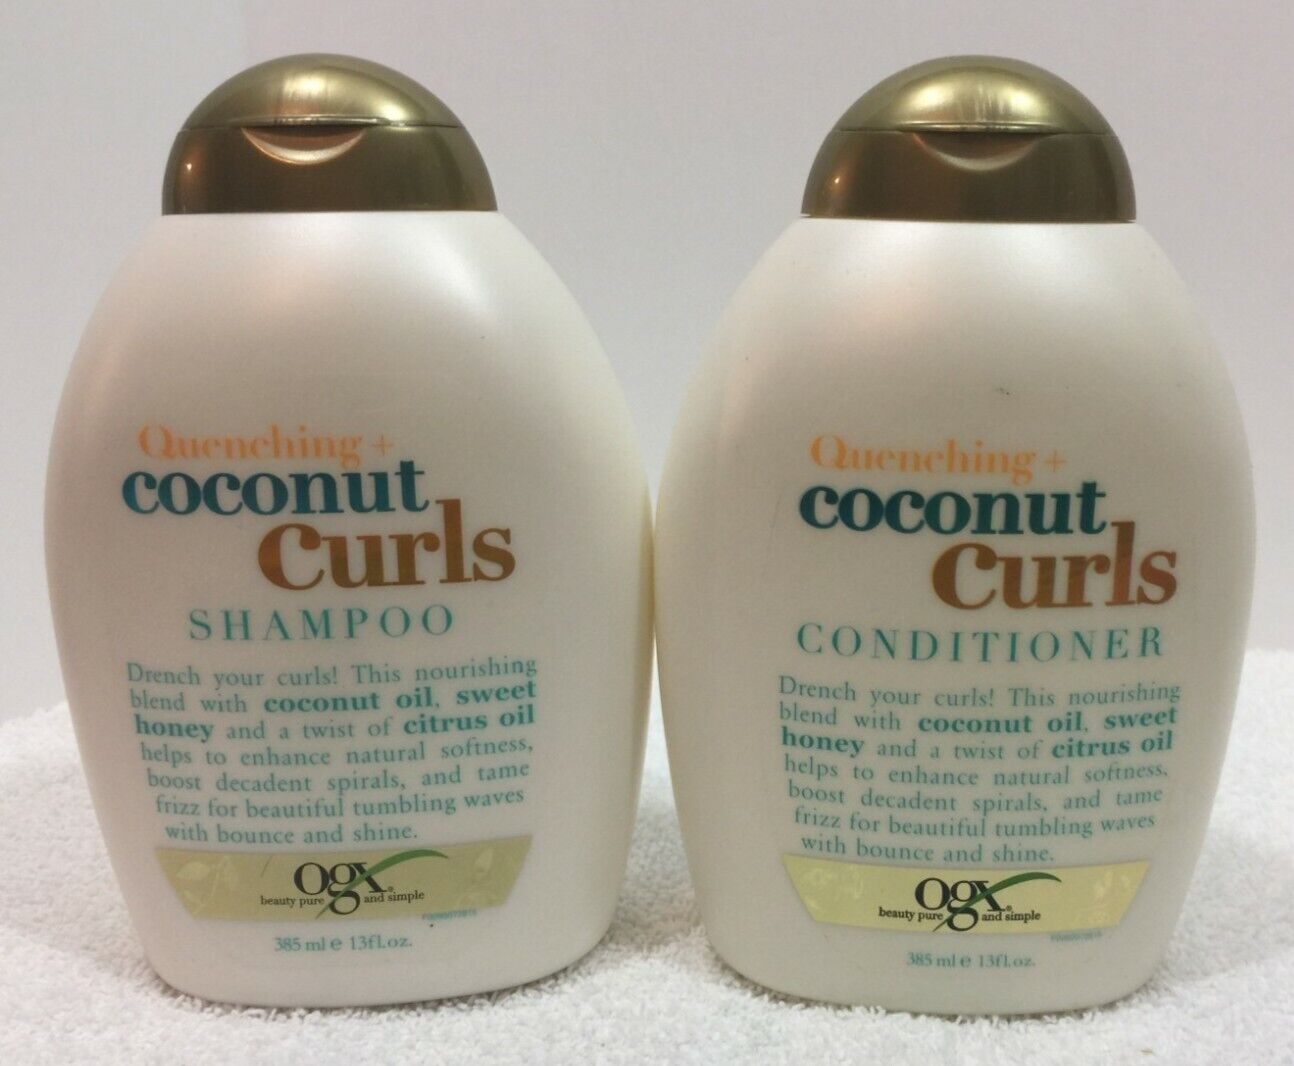 quenching coconut curls shampoo and conditioner 13